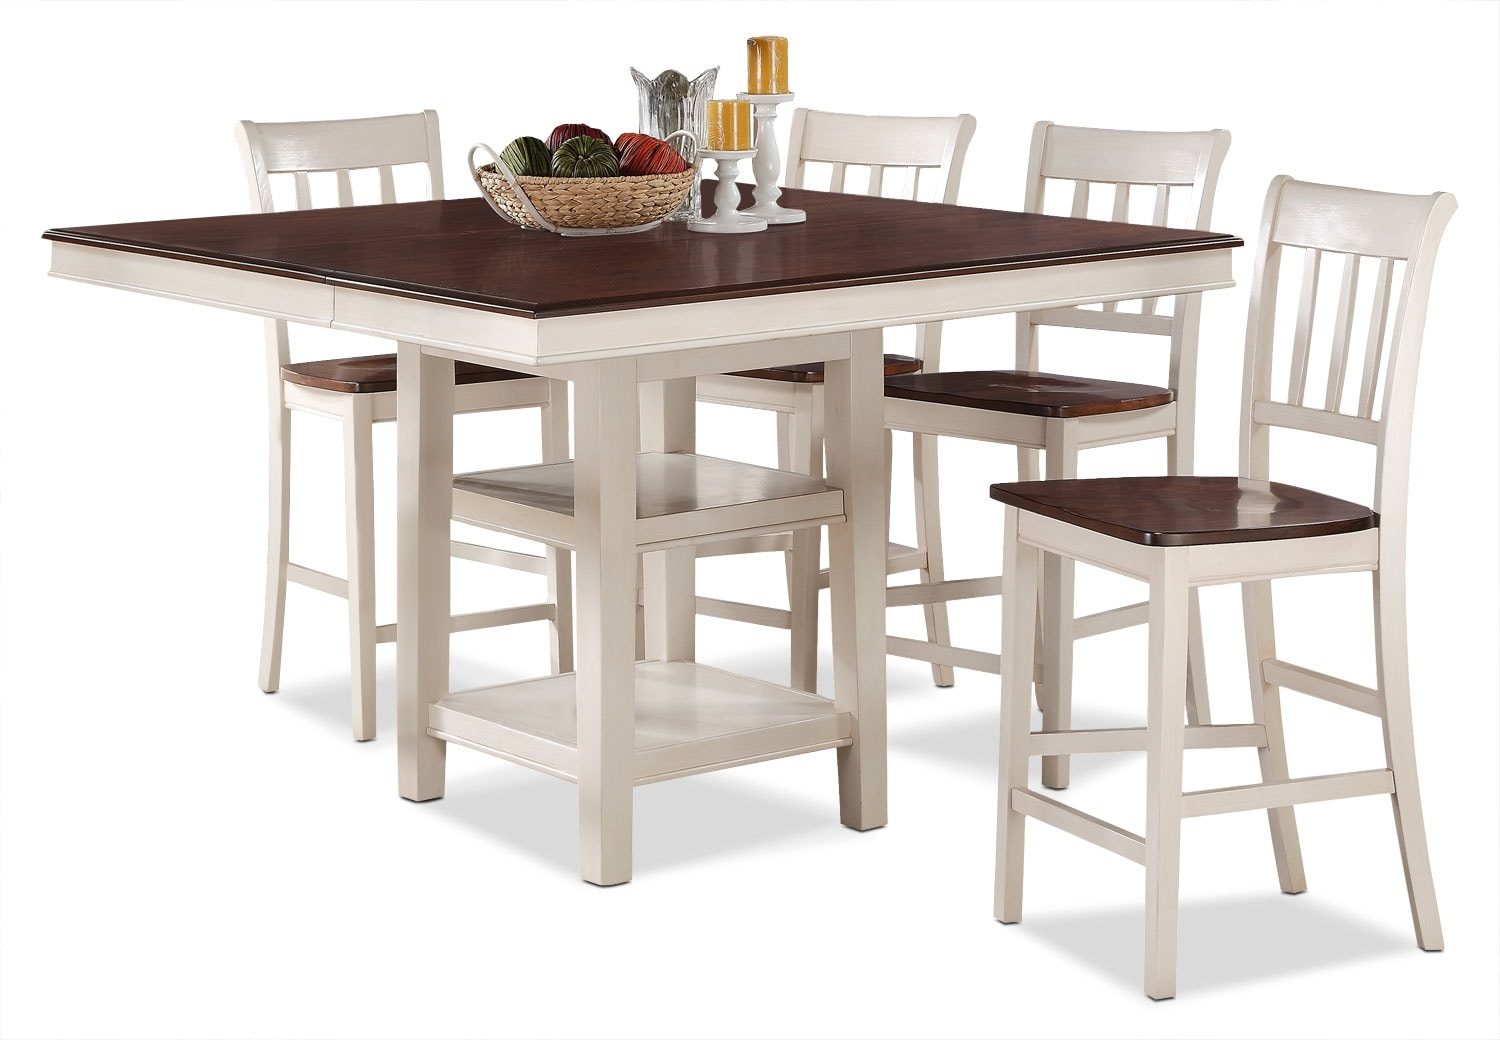 Nyla 5-Piece Counter-Height Dining Package – Antique White and Cherry